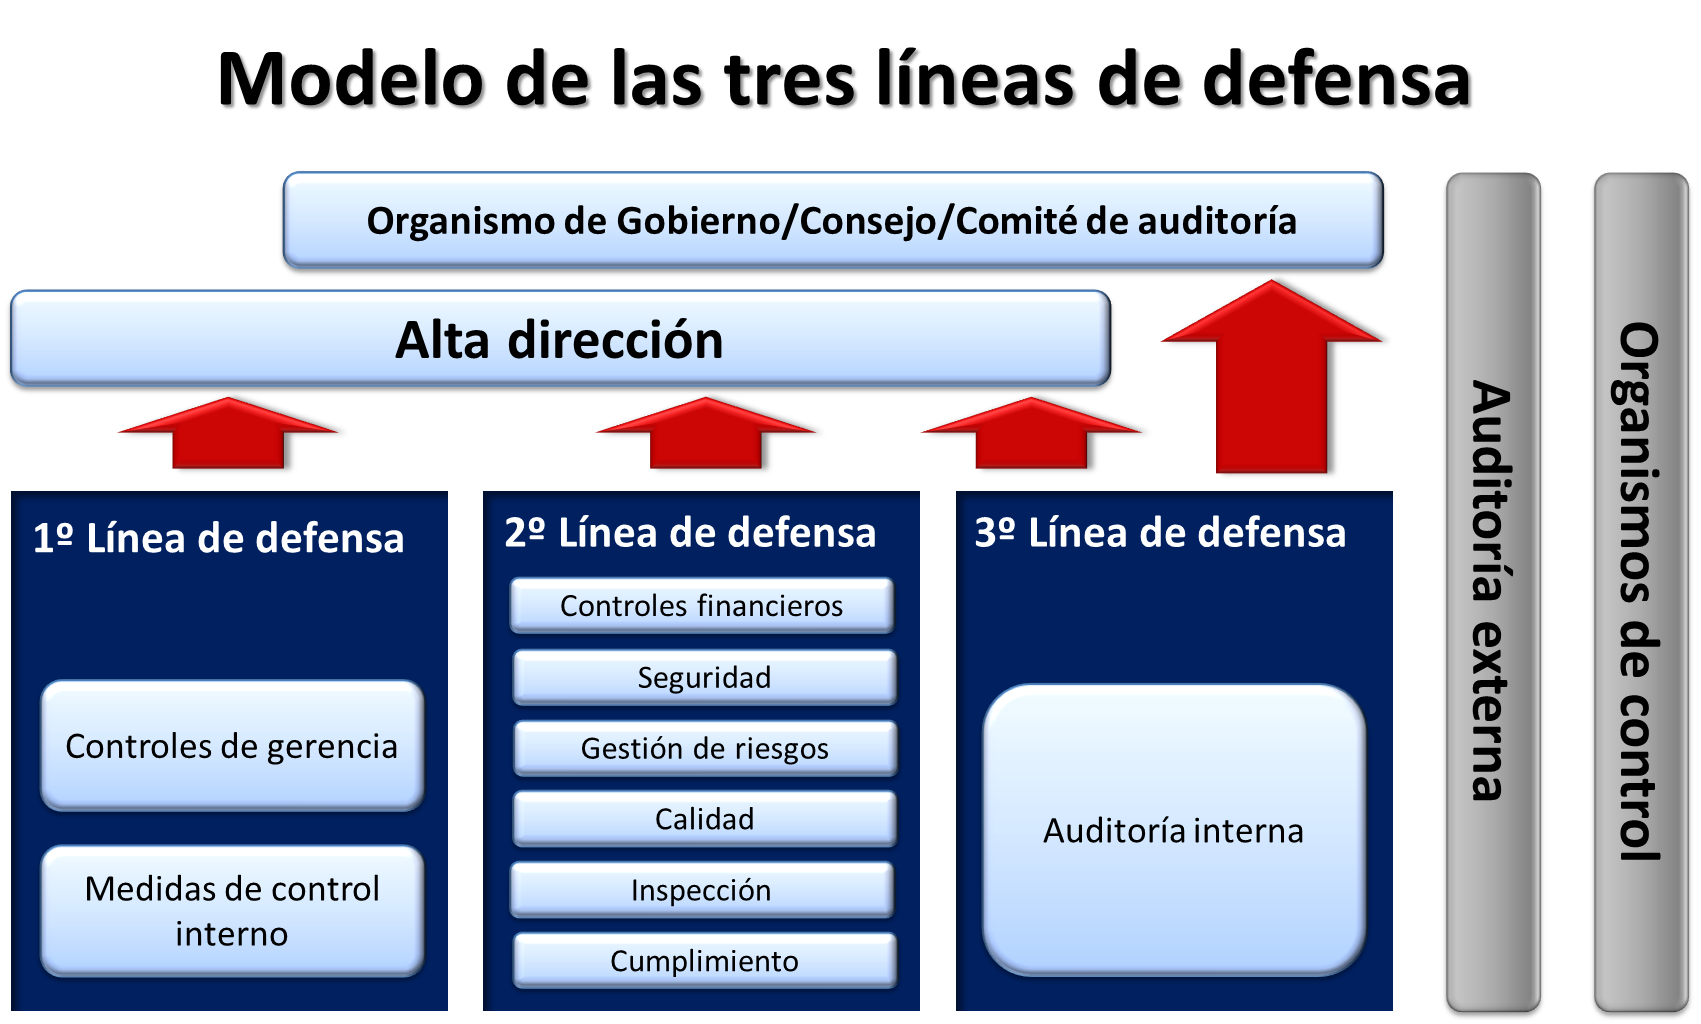 tres lineas de defensa